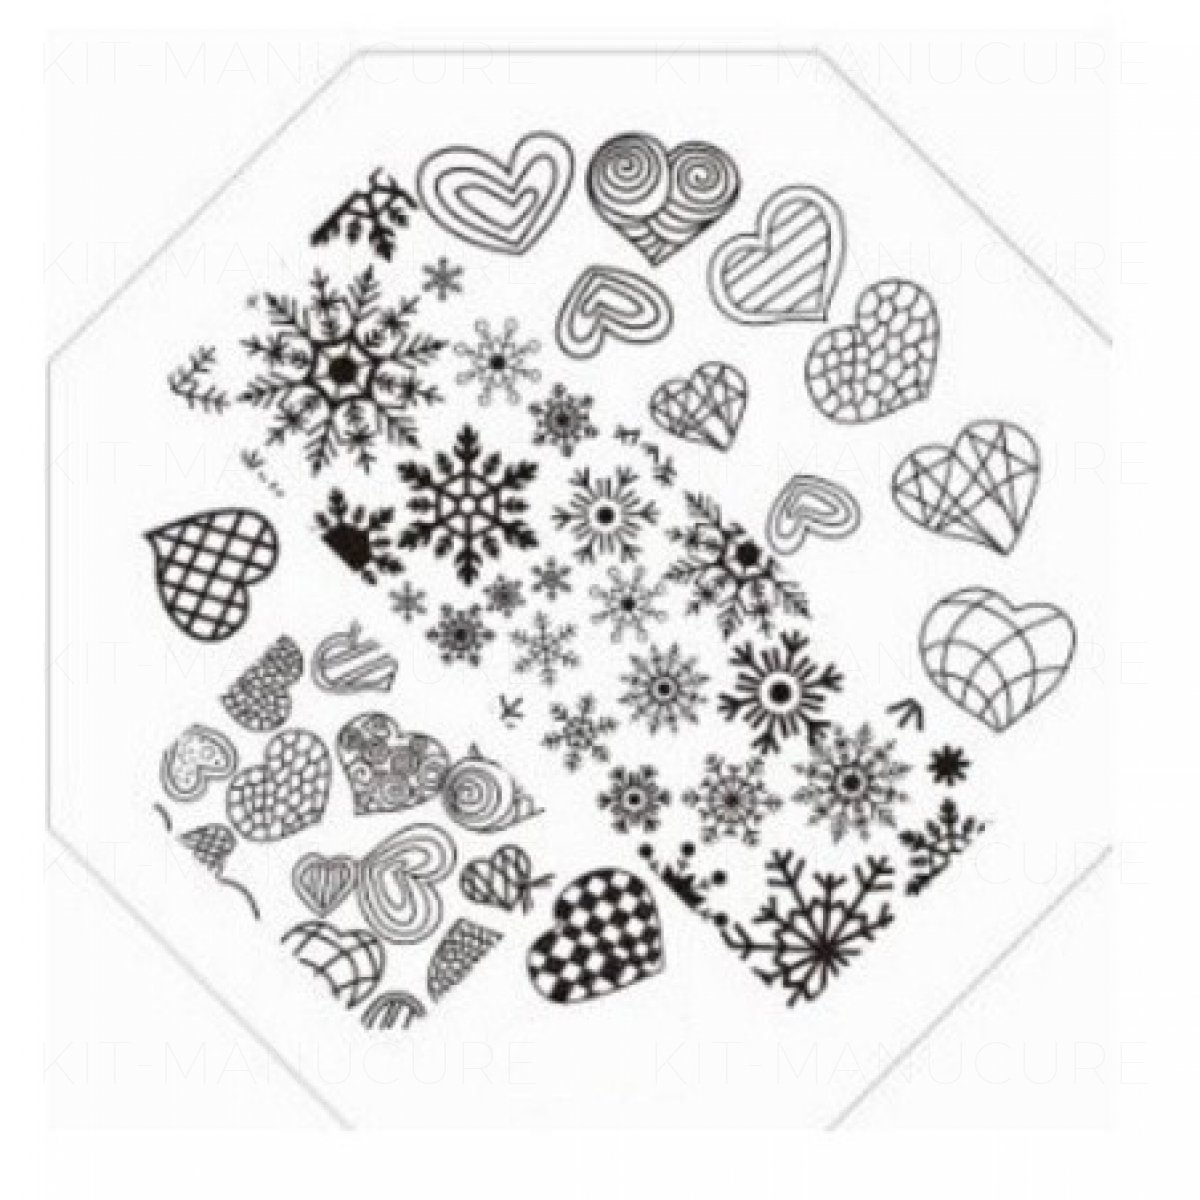 https://www.kit-manucure.com/1057-thickbox_default/plaque-de-stamping-flocons-de-neige-et-coeur.jpg